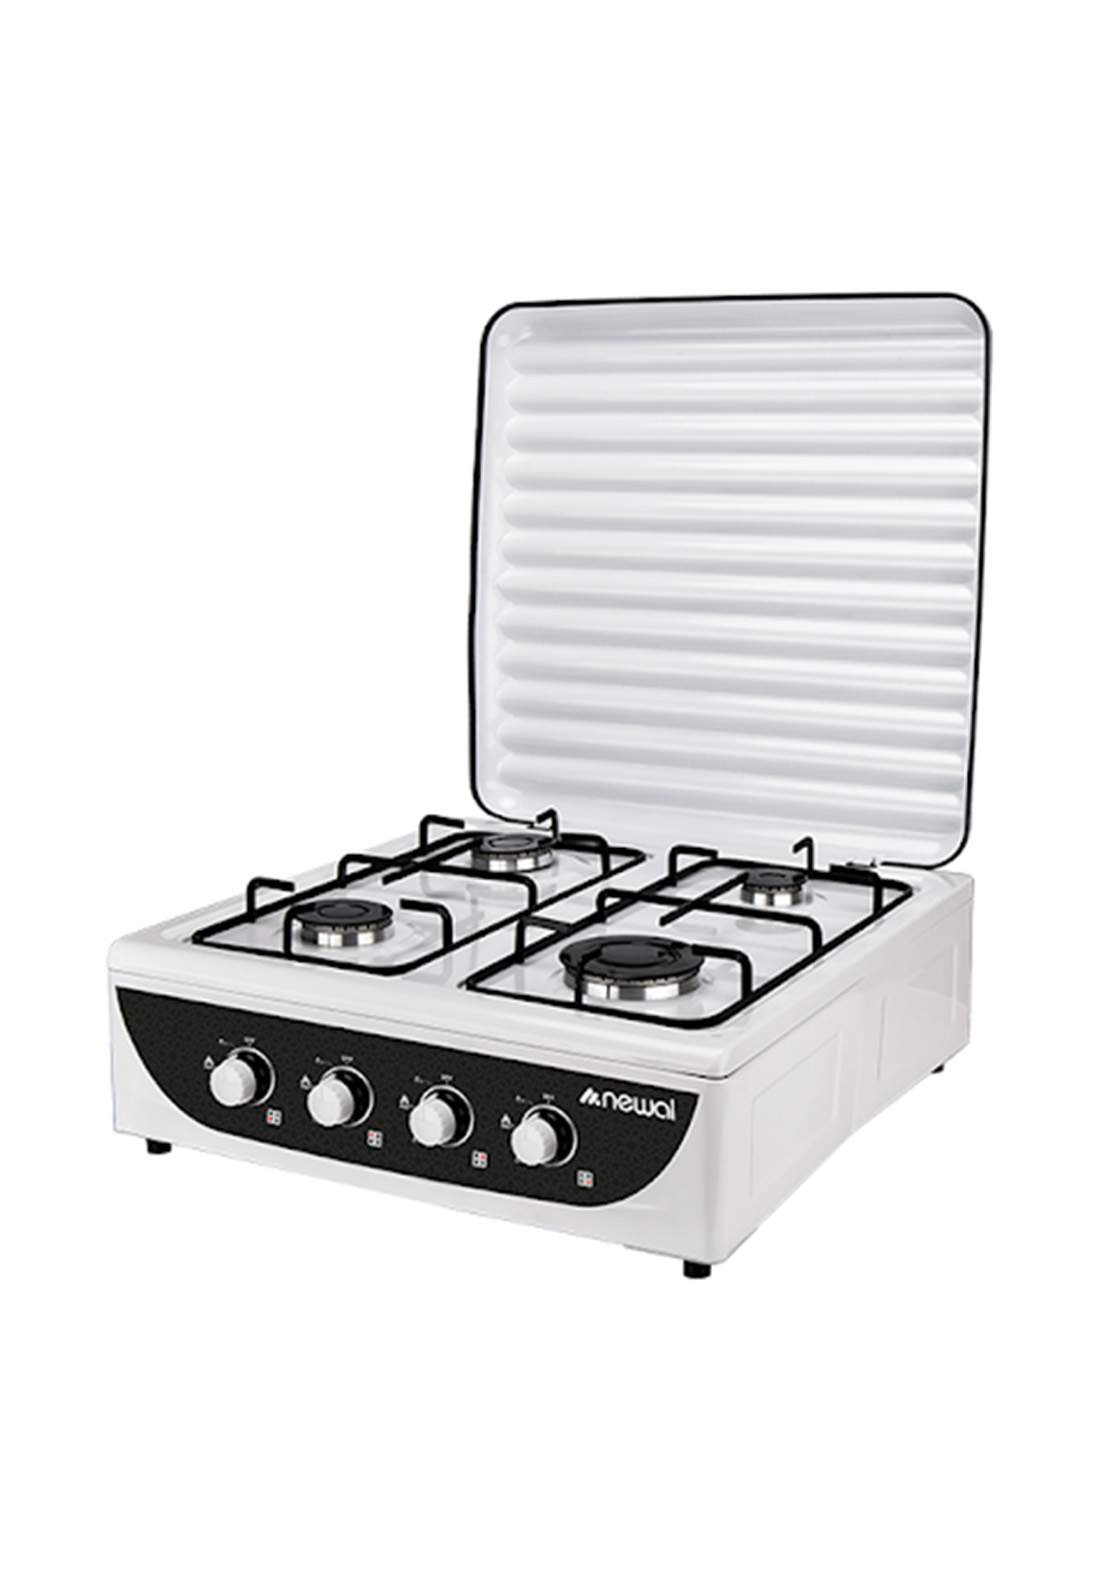 Newal Hob-236-01 Tabletop Cooker 4 Cooking Places  طباخ منضدي